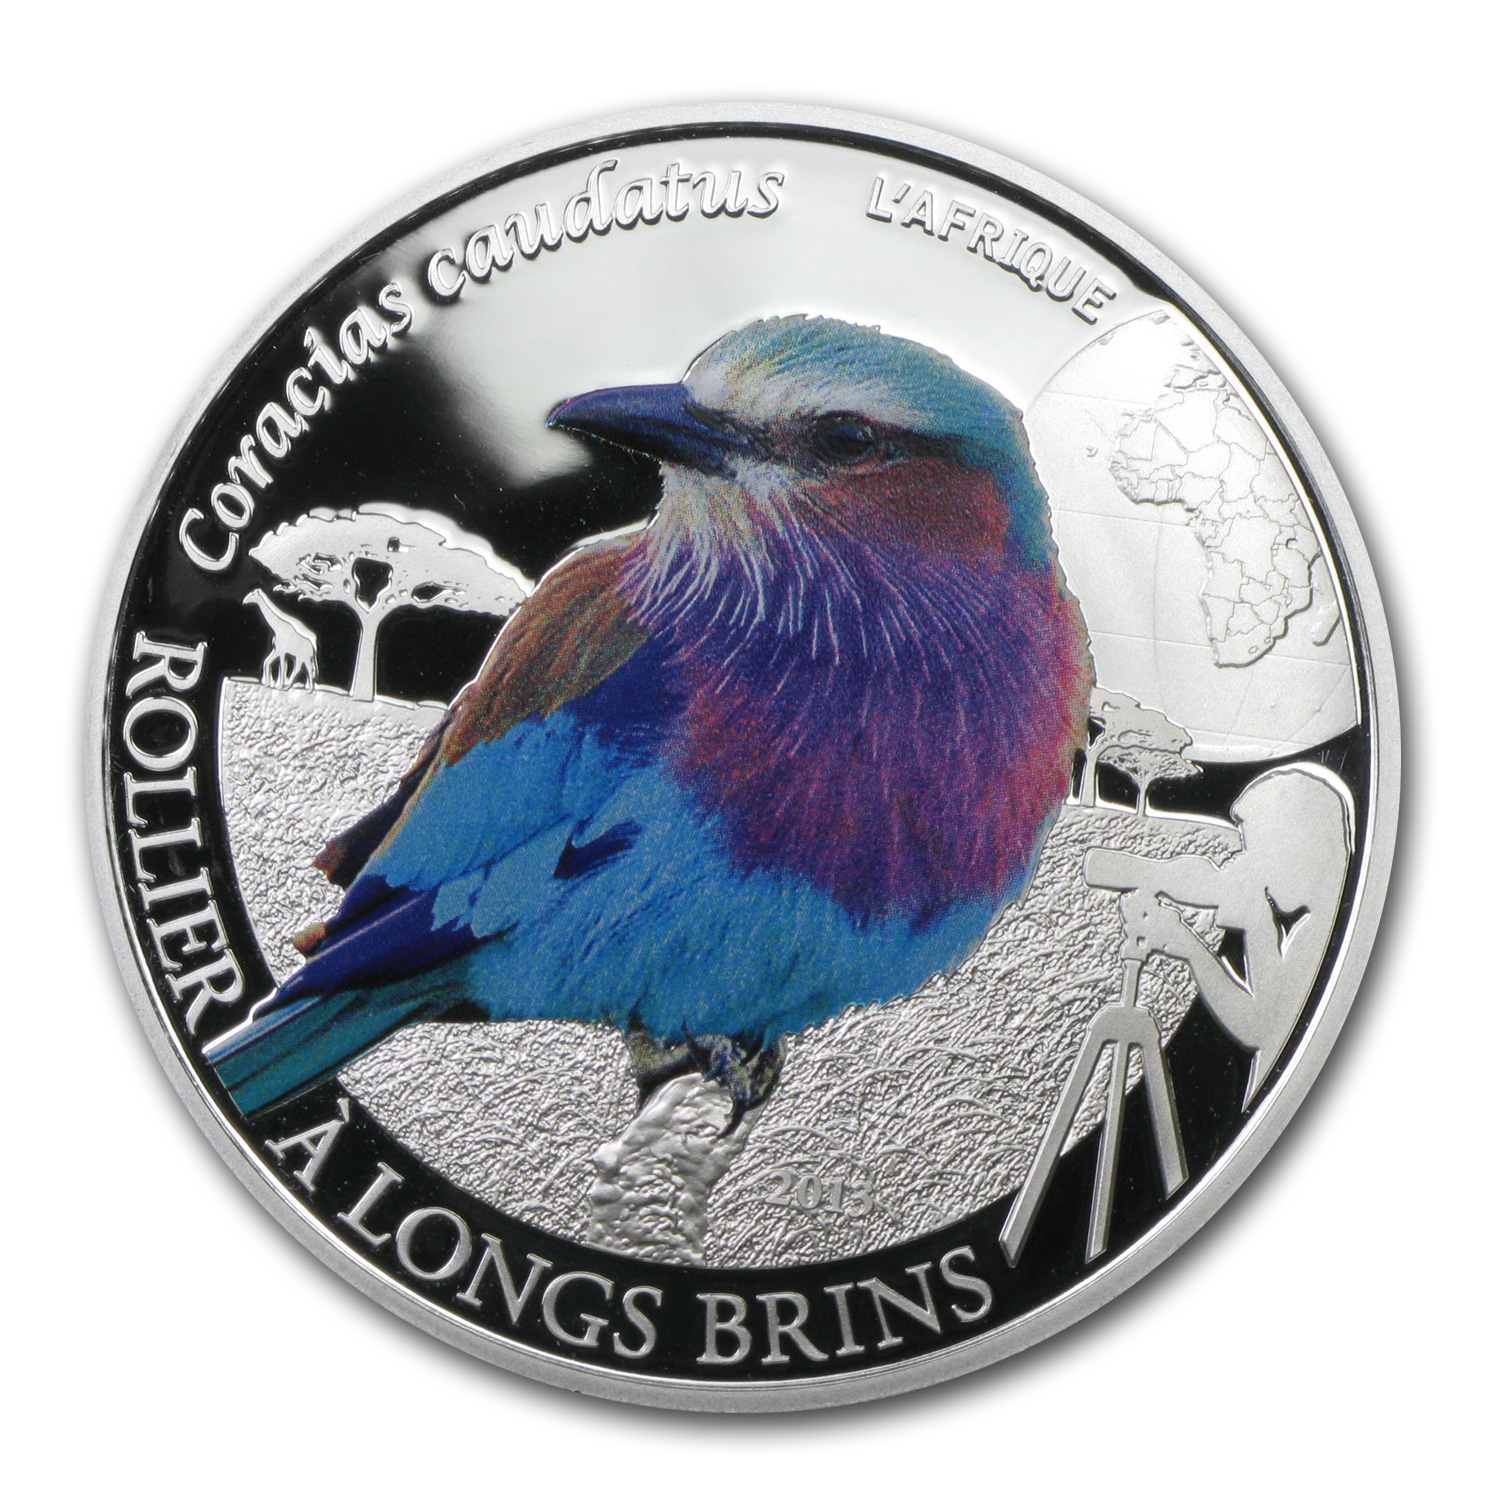 Burkina 2013 1/2 oz Silver Colorful Birds - Lilac-Breasted Roller